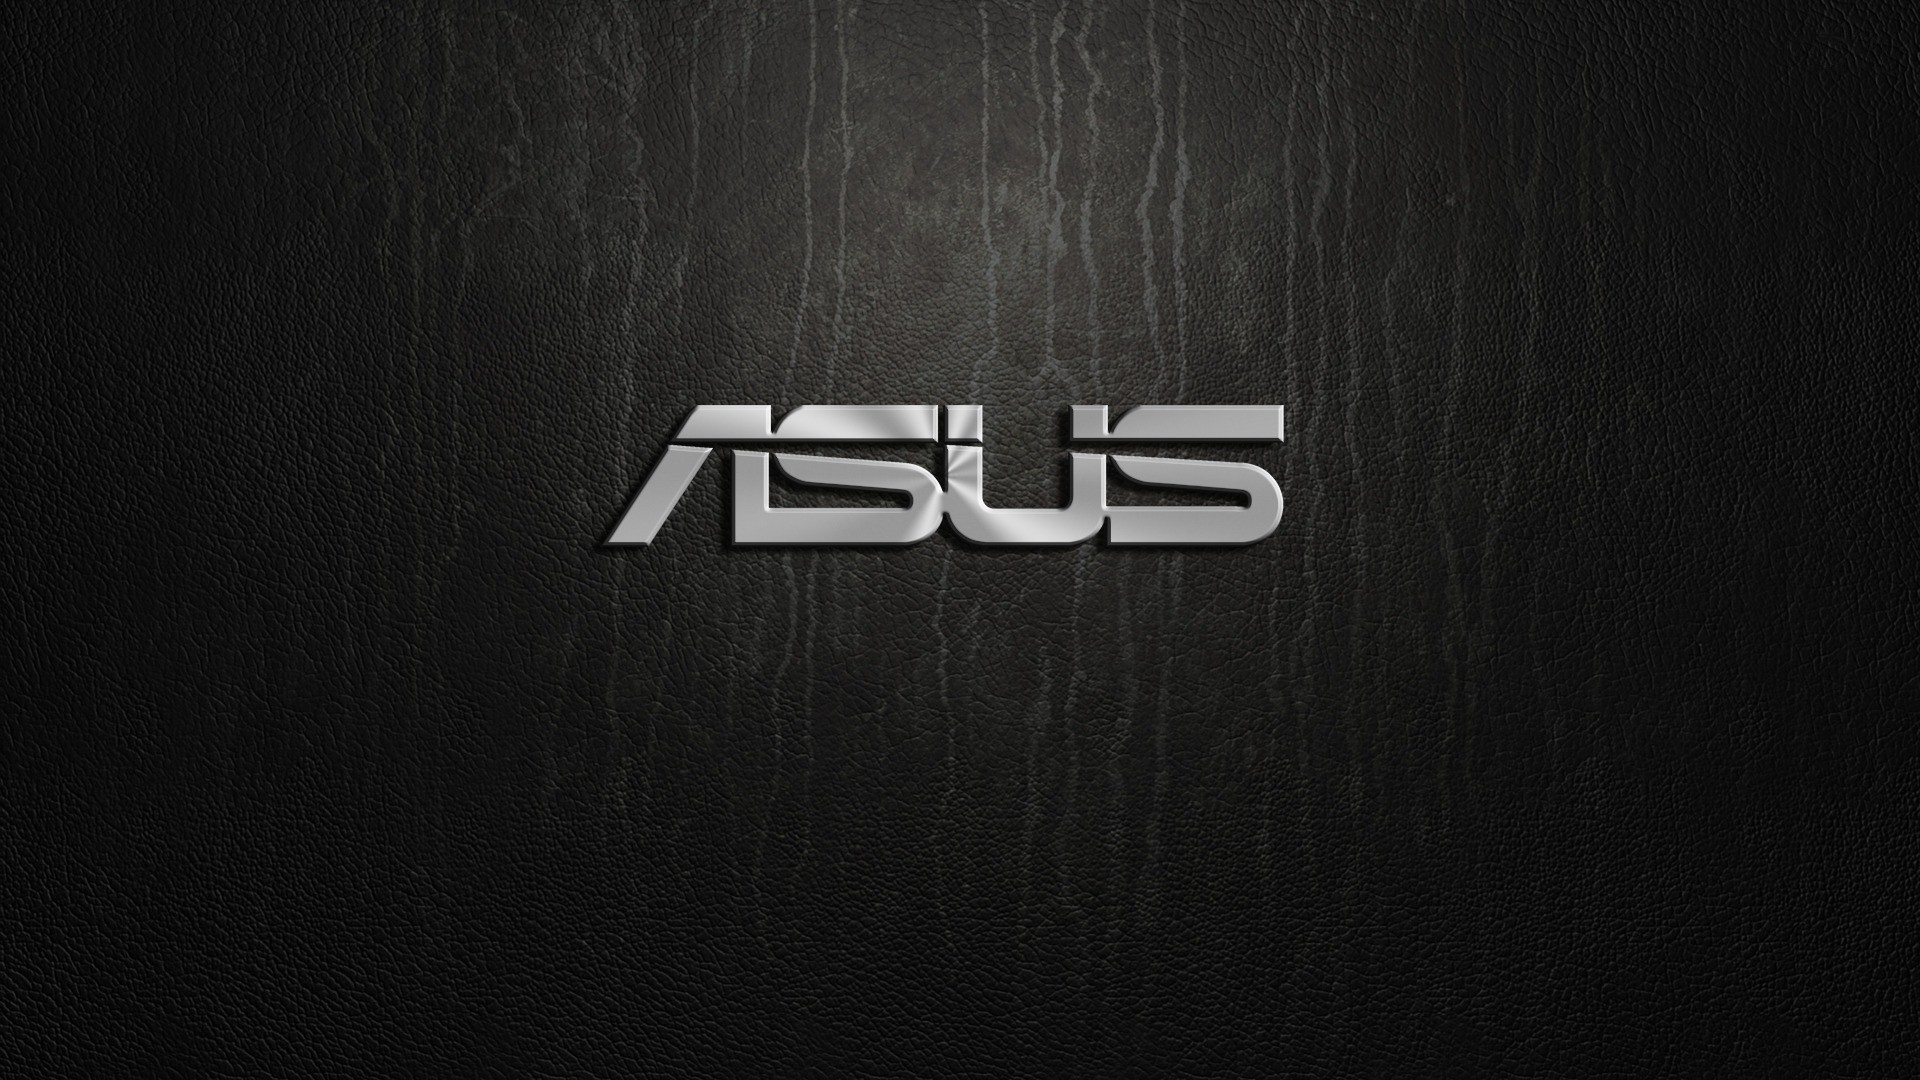 Asus silver logo on black background   HD wallpaper 1920x1080